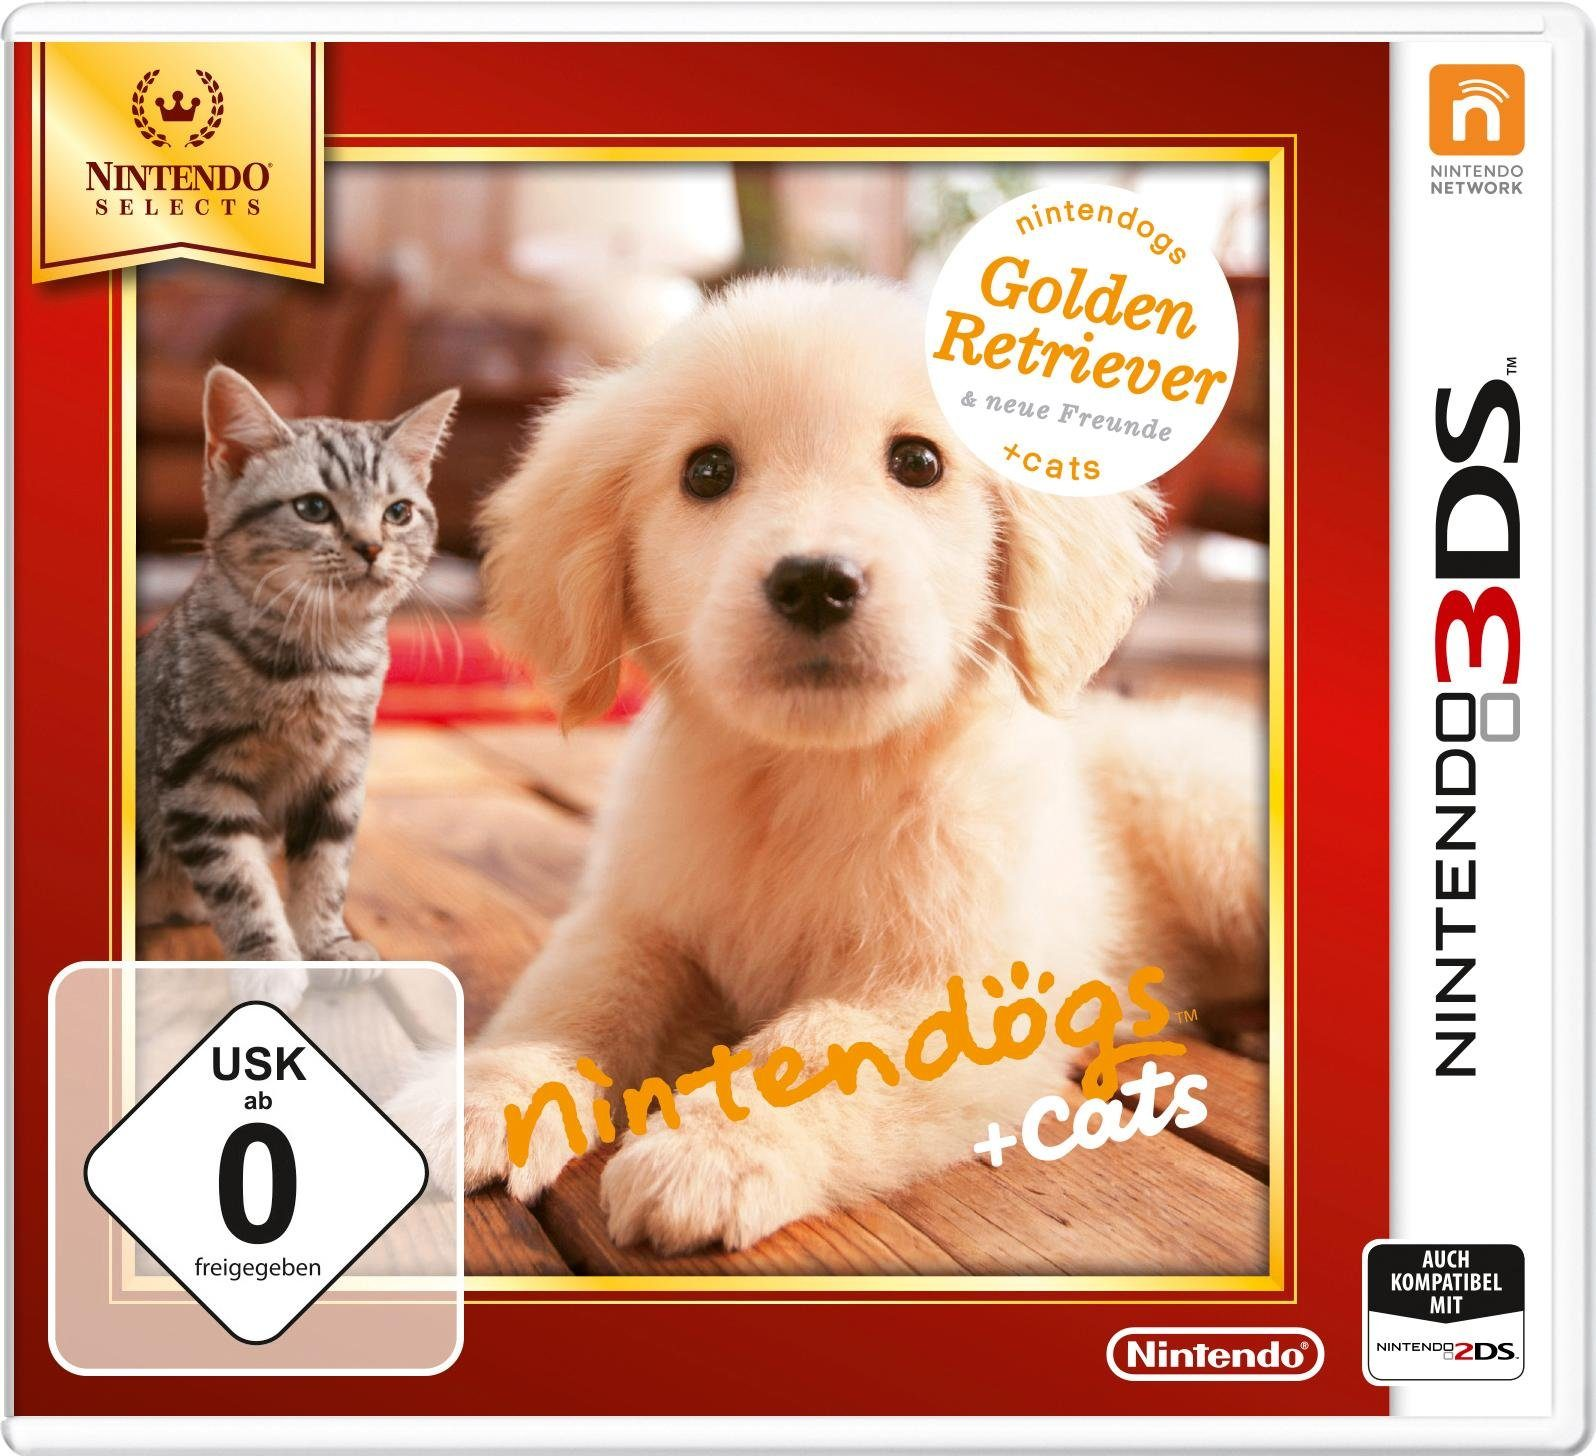 Nintendogs + Cats Golden Retriever & neue Freunde Nintendo Selects 3DS